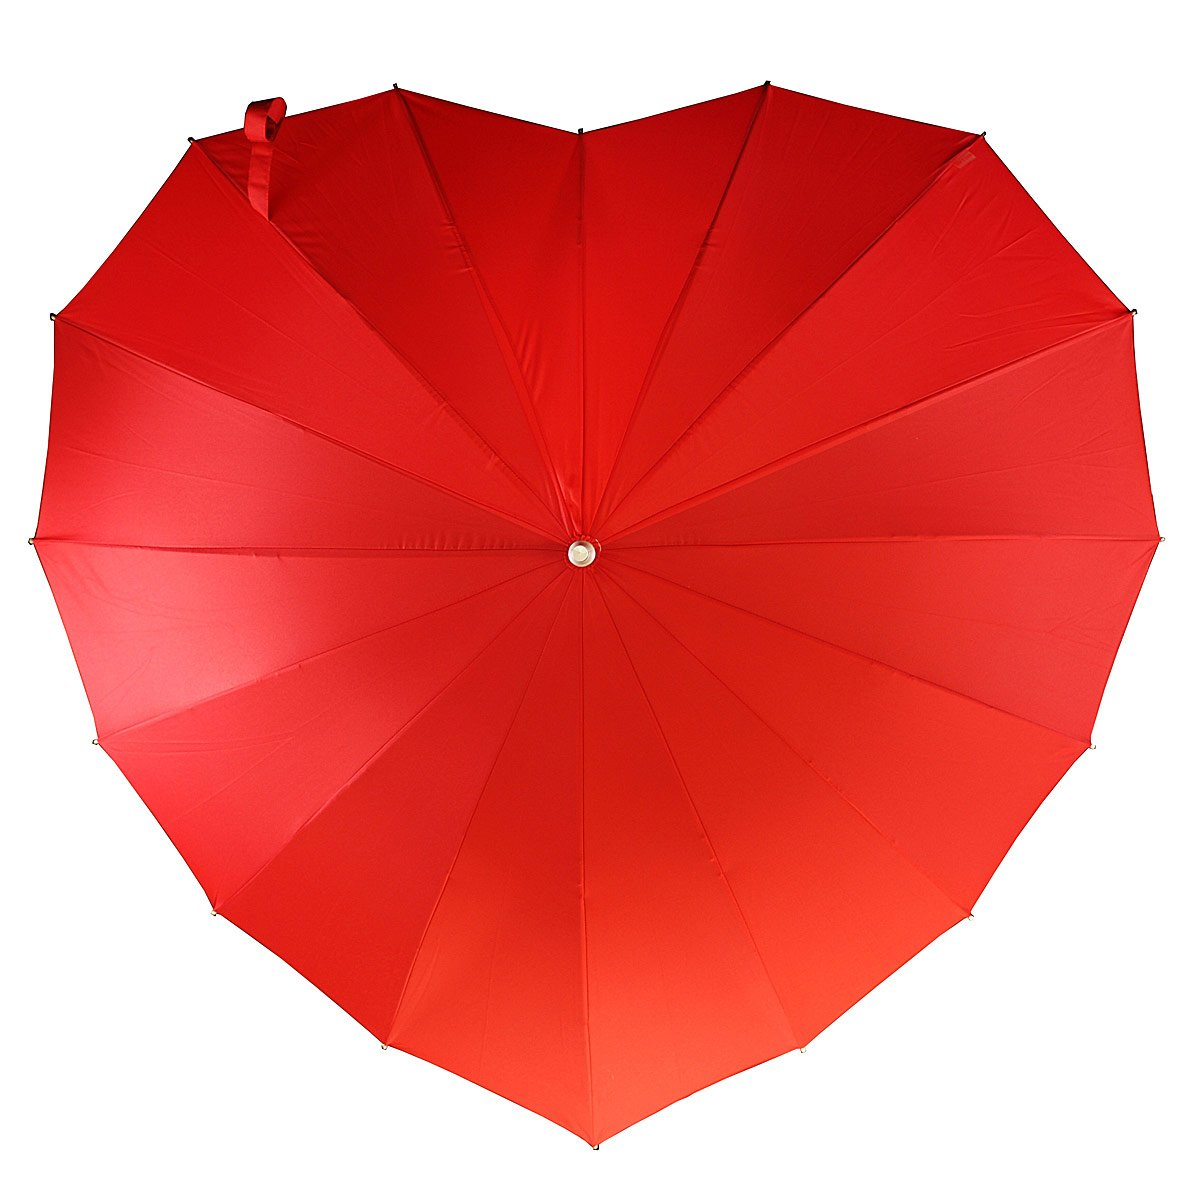 Crimson Heart Umbrella